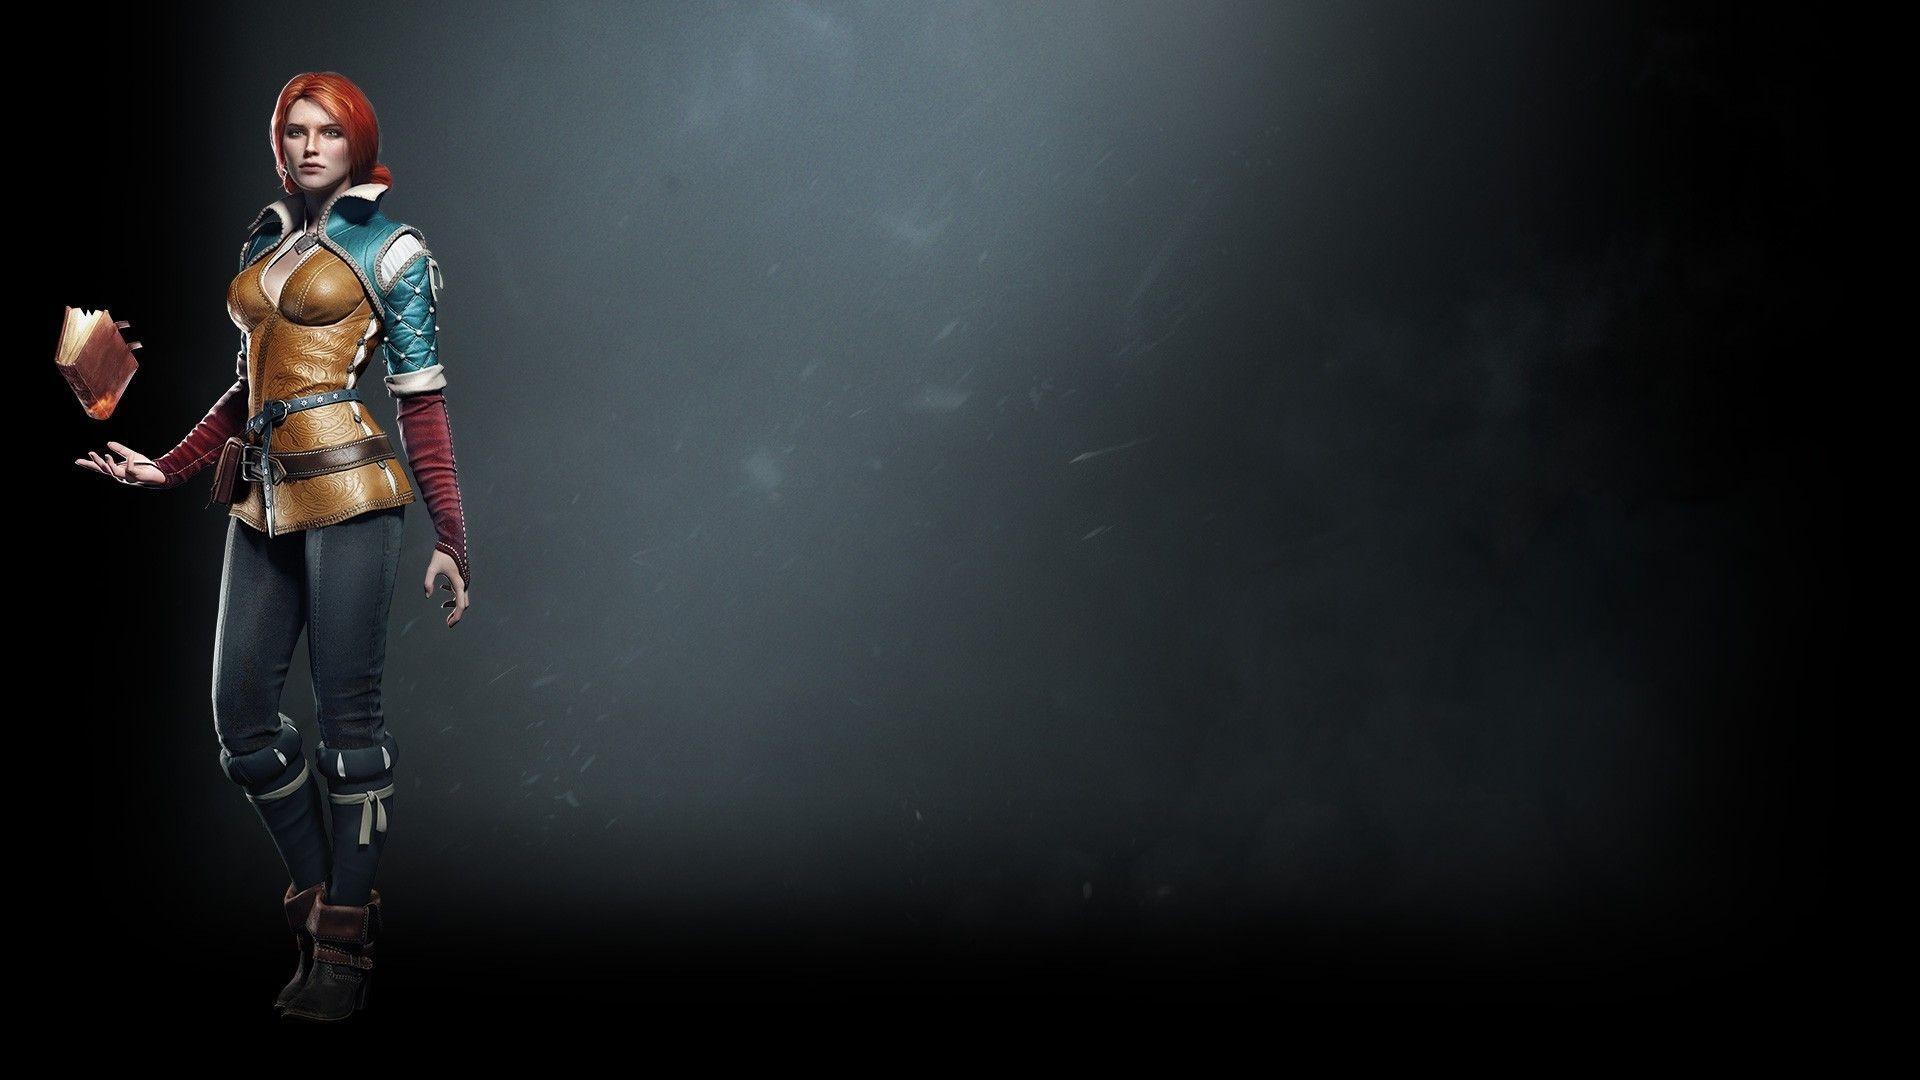 Res: 1920x1080, The Witcher Triss Wallpaper